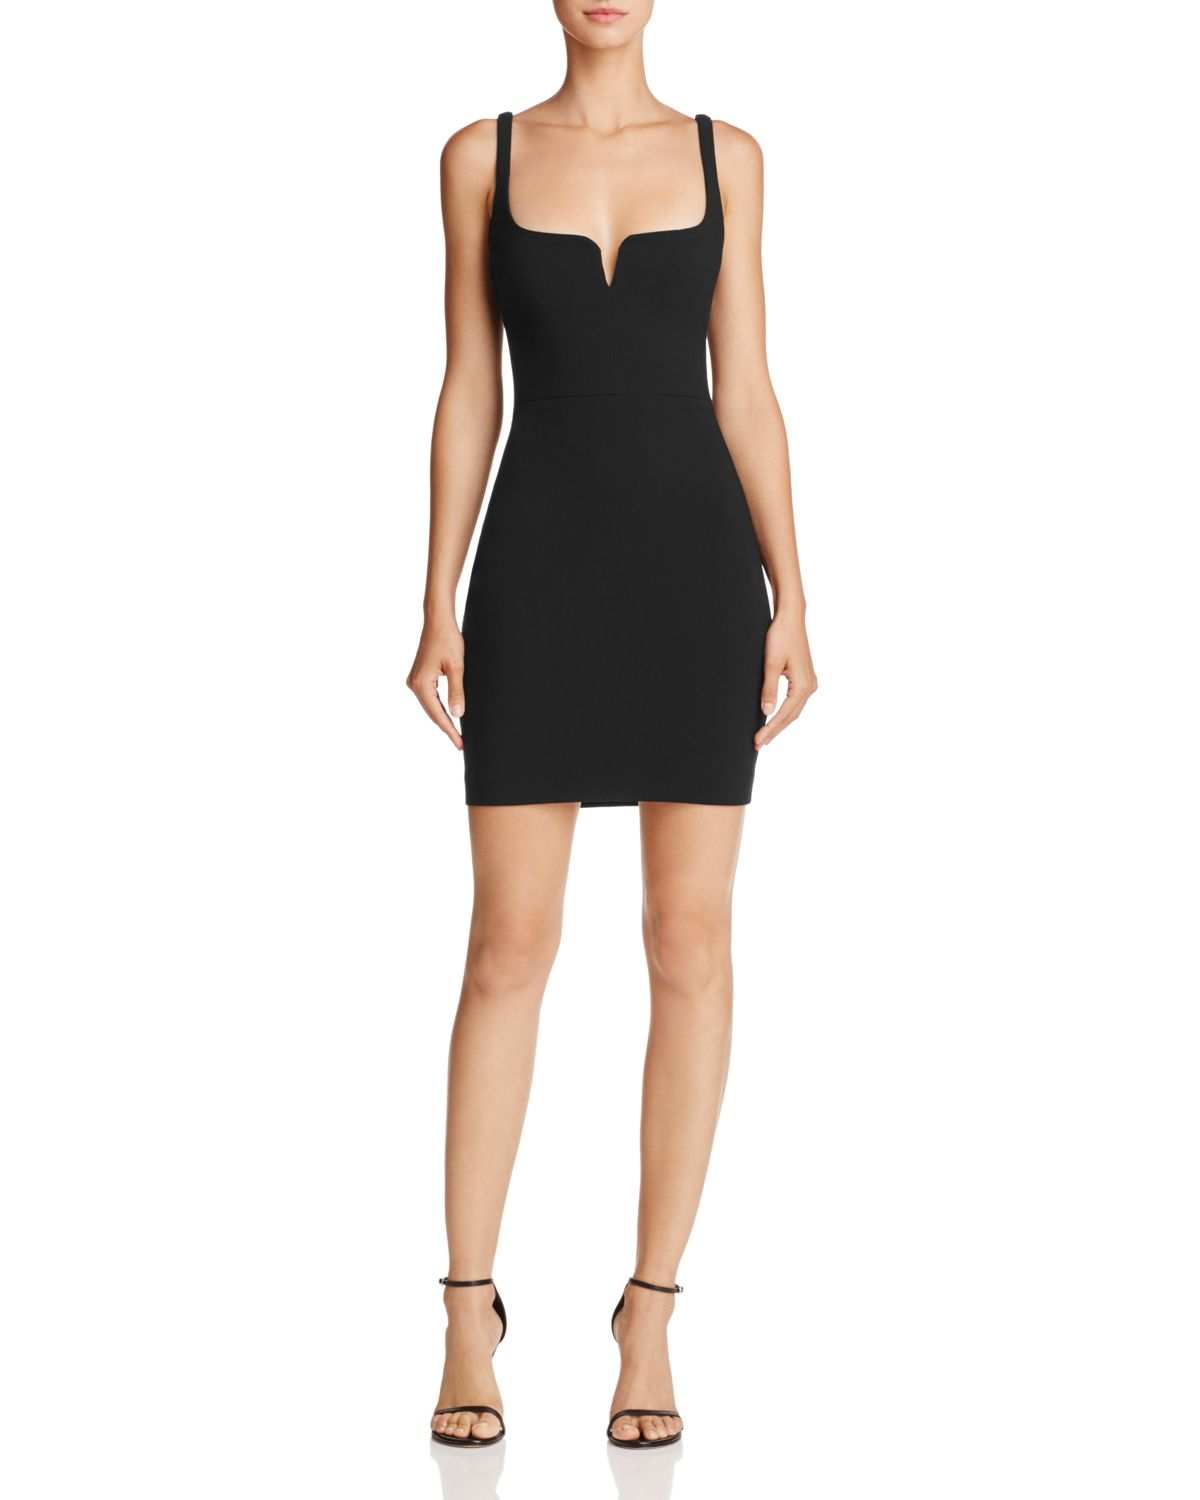 Constance Body Con Dress   100% Exclusive by Likely